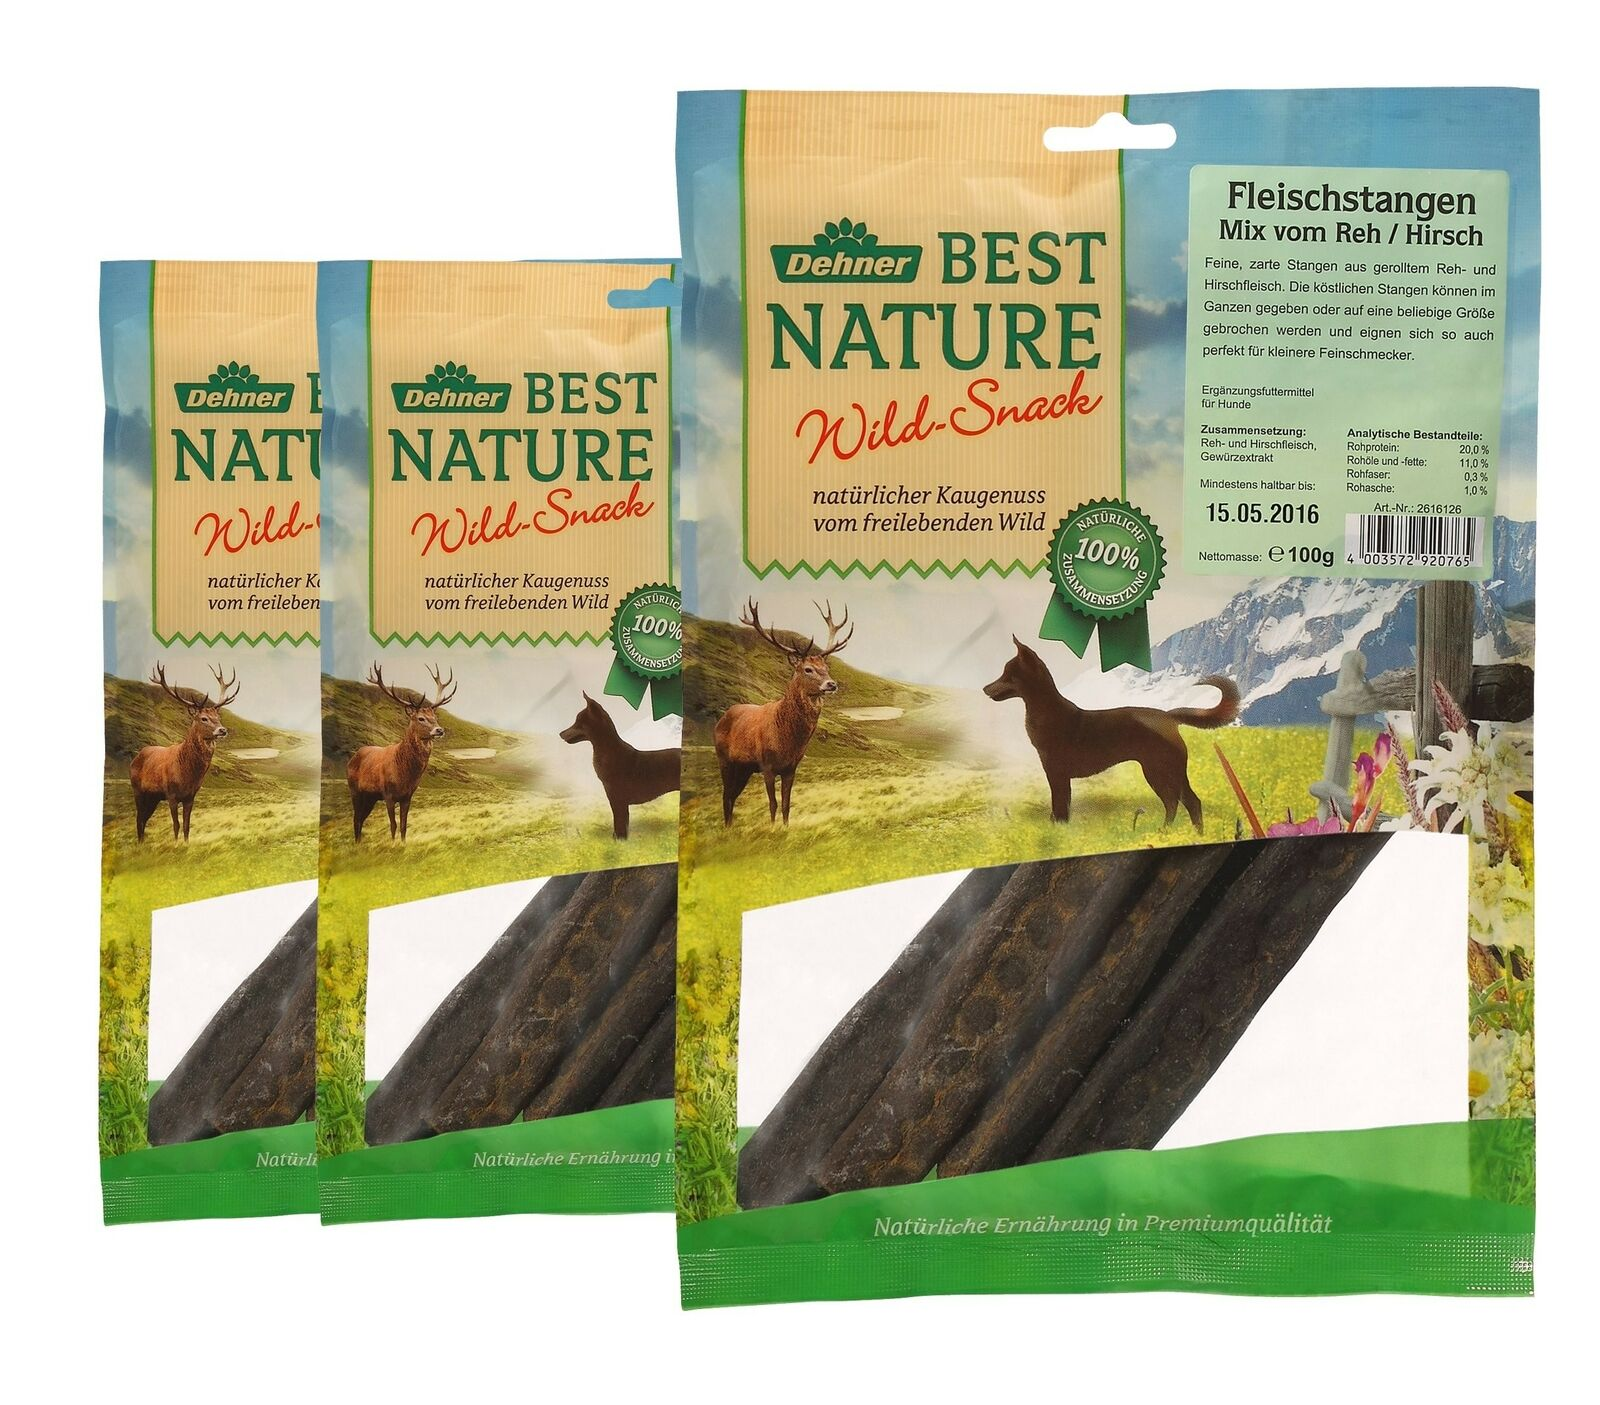 Dehner Best Nature Deer Deer Dog Snack Meat Sticks 3 x 100 g (300 g)